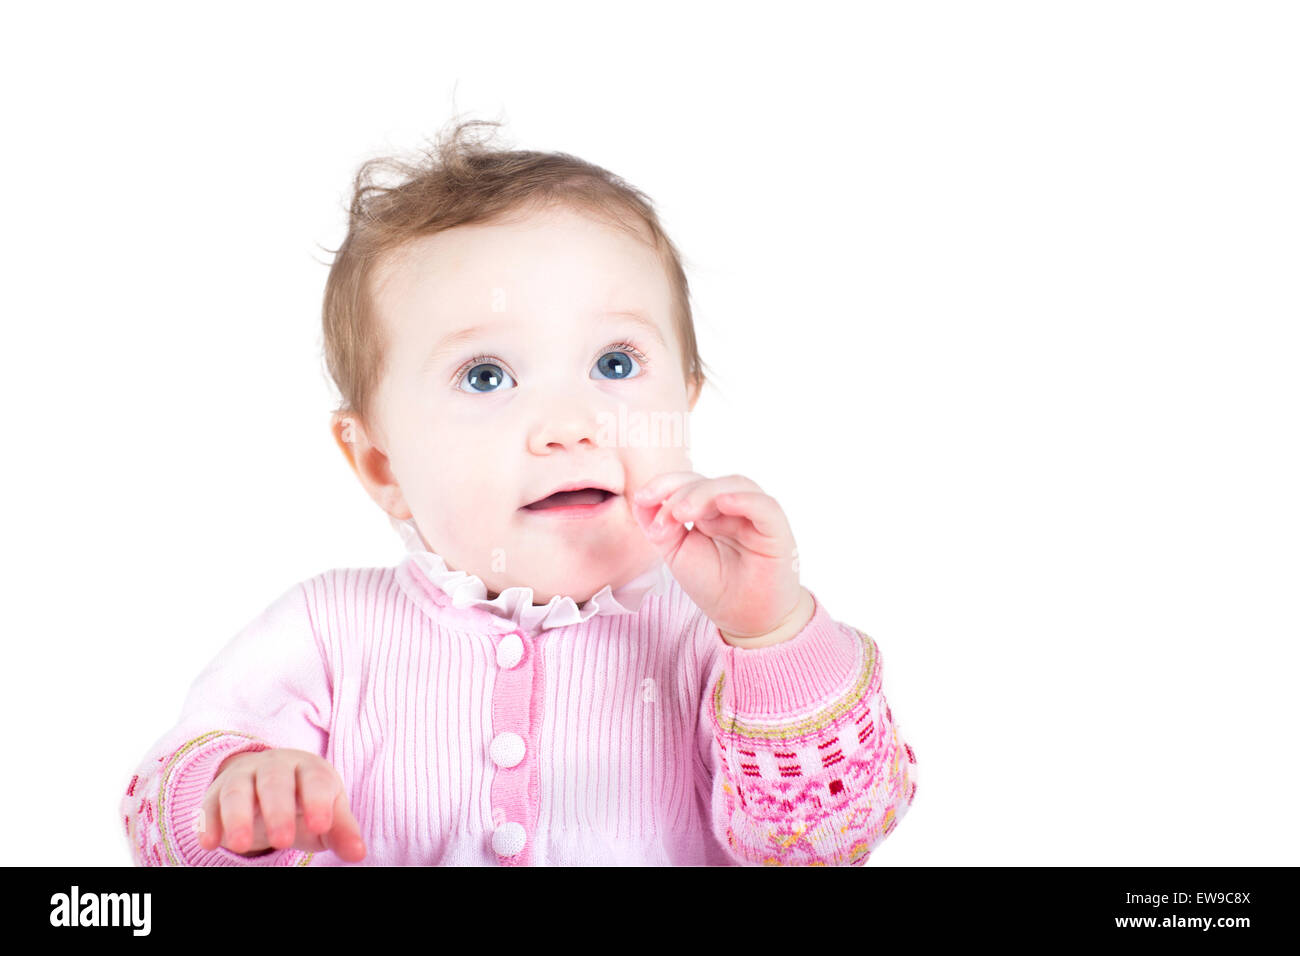 Beautiful baby girl in a pink knitted jacket, isolated on white - Stock Image